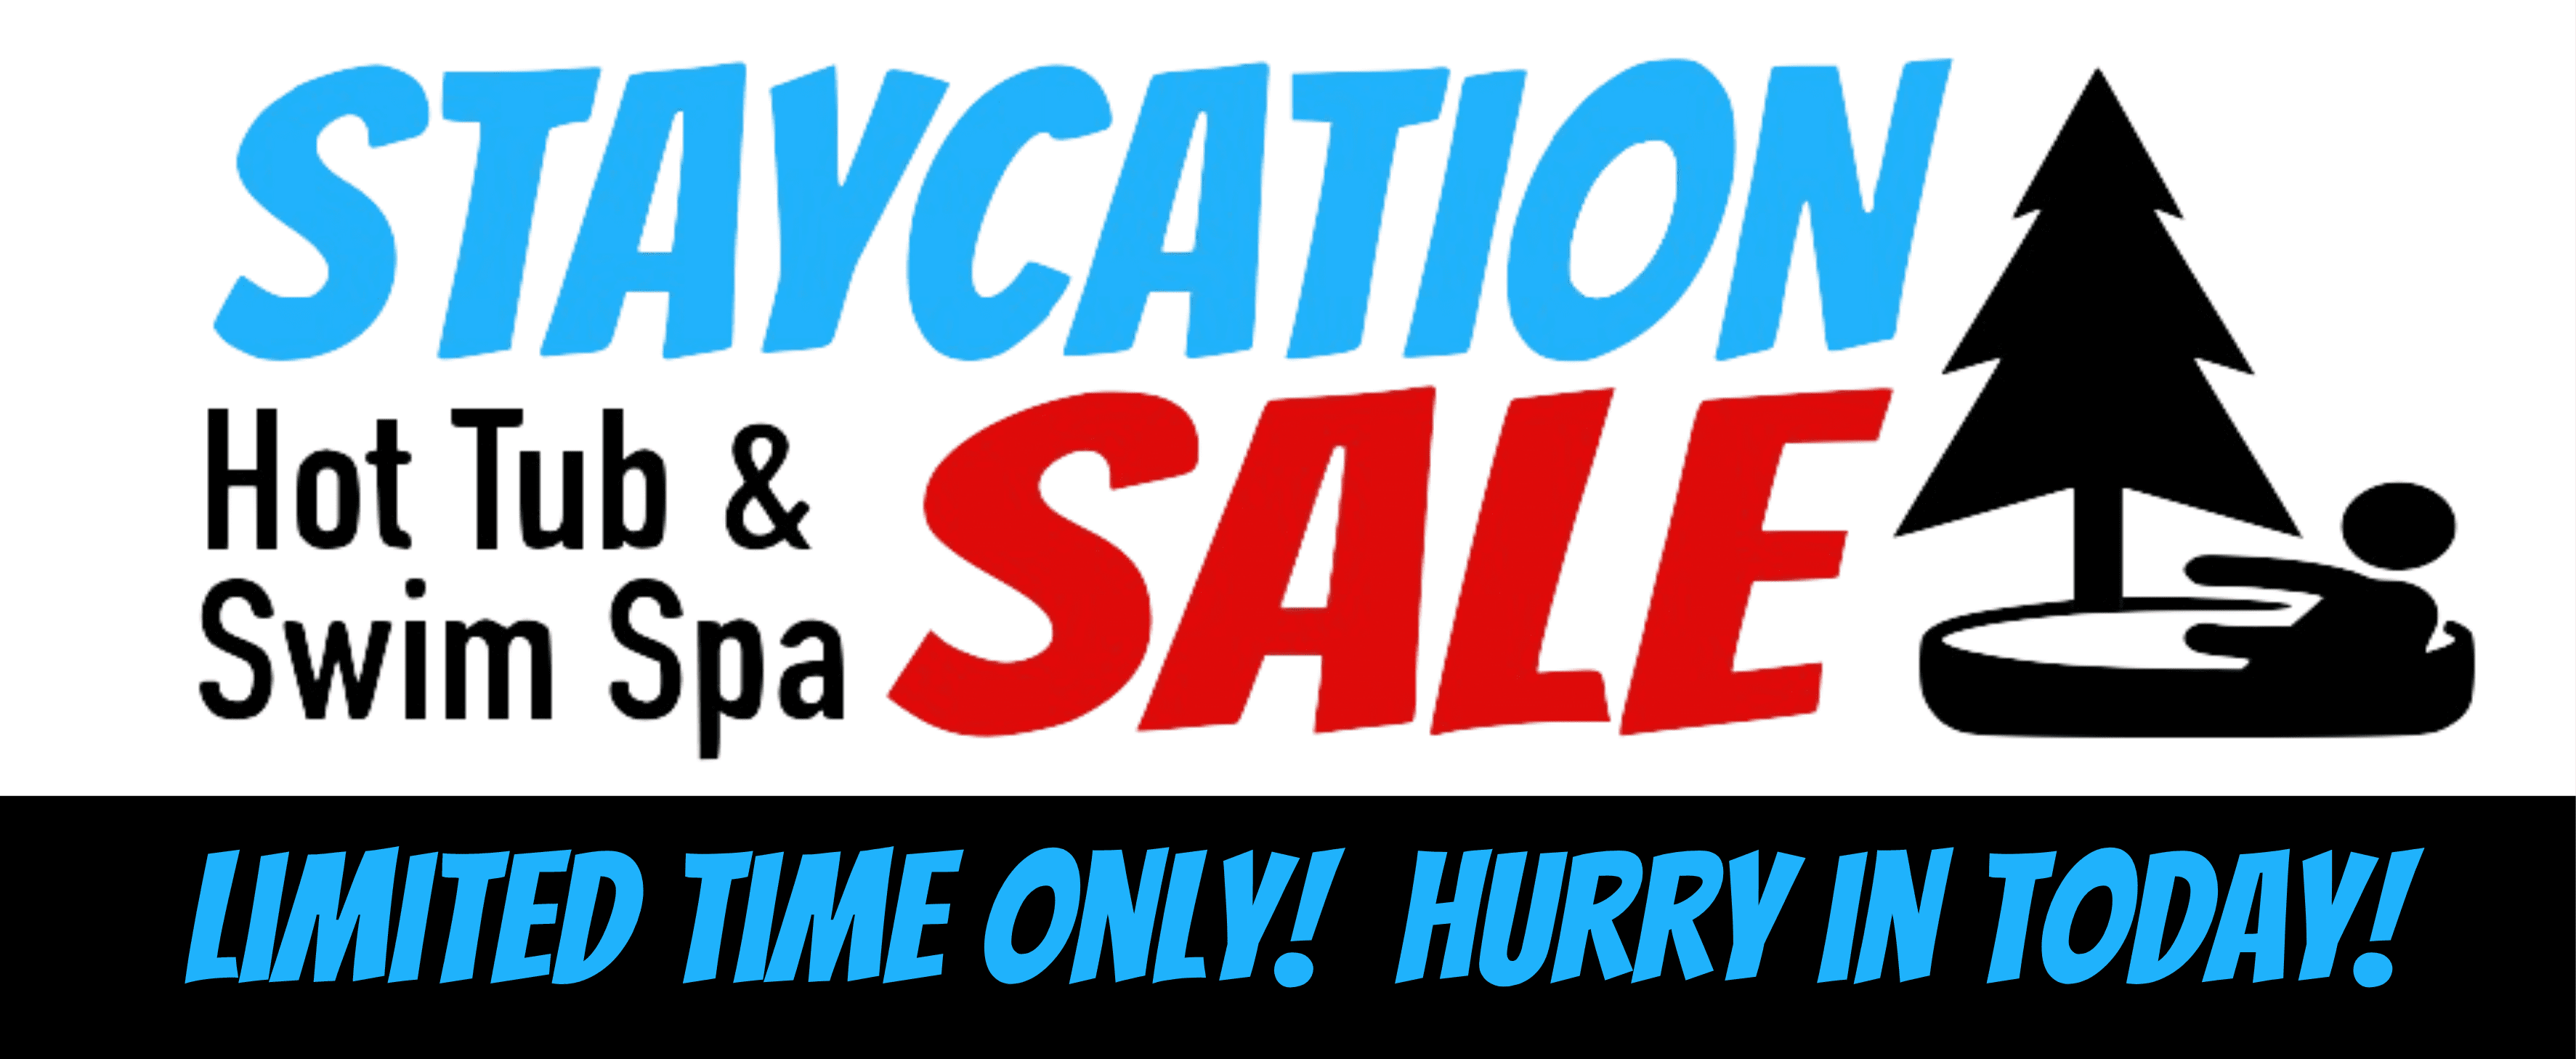 Hot Tub and Swim Spa Sale - Staycation Sale at Black Pine Spas